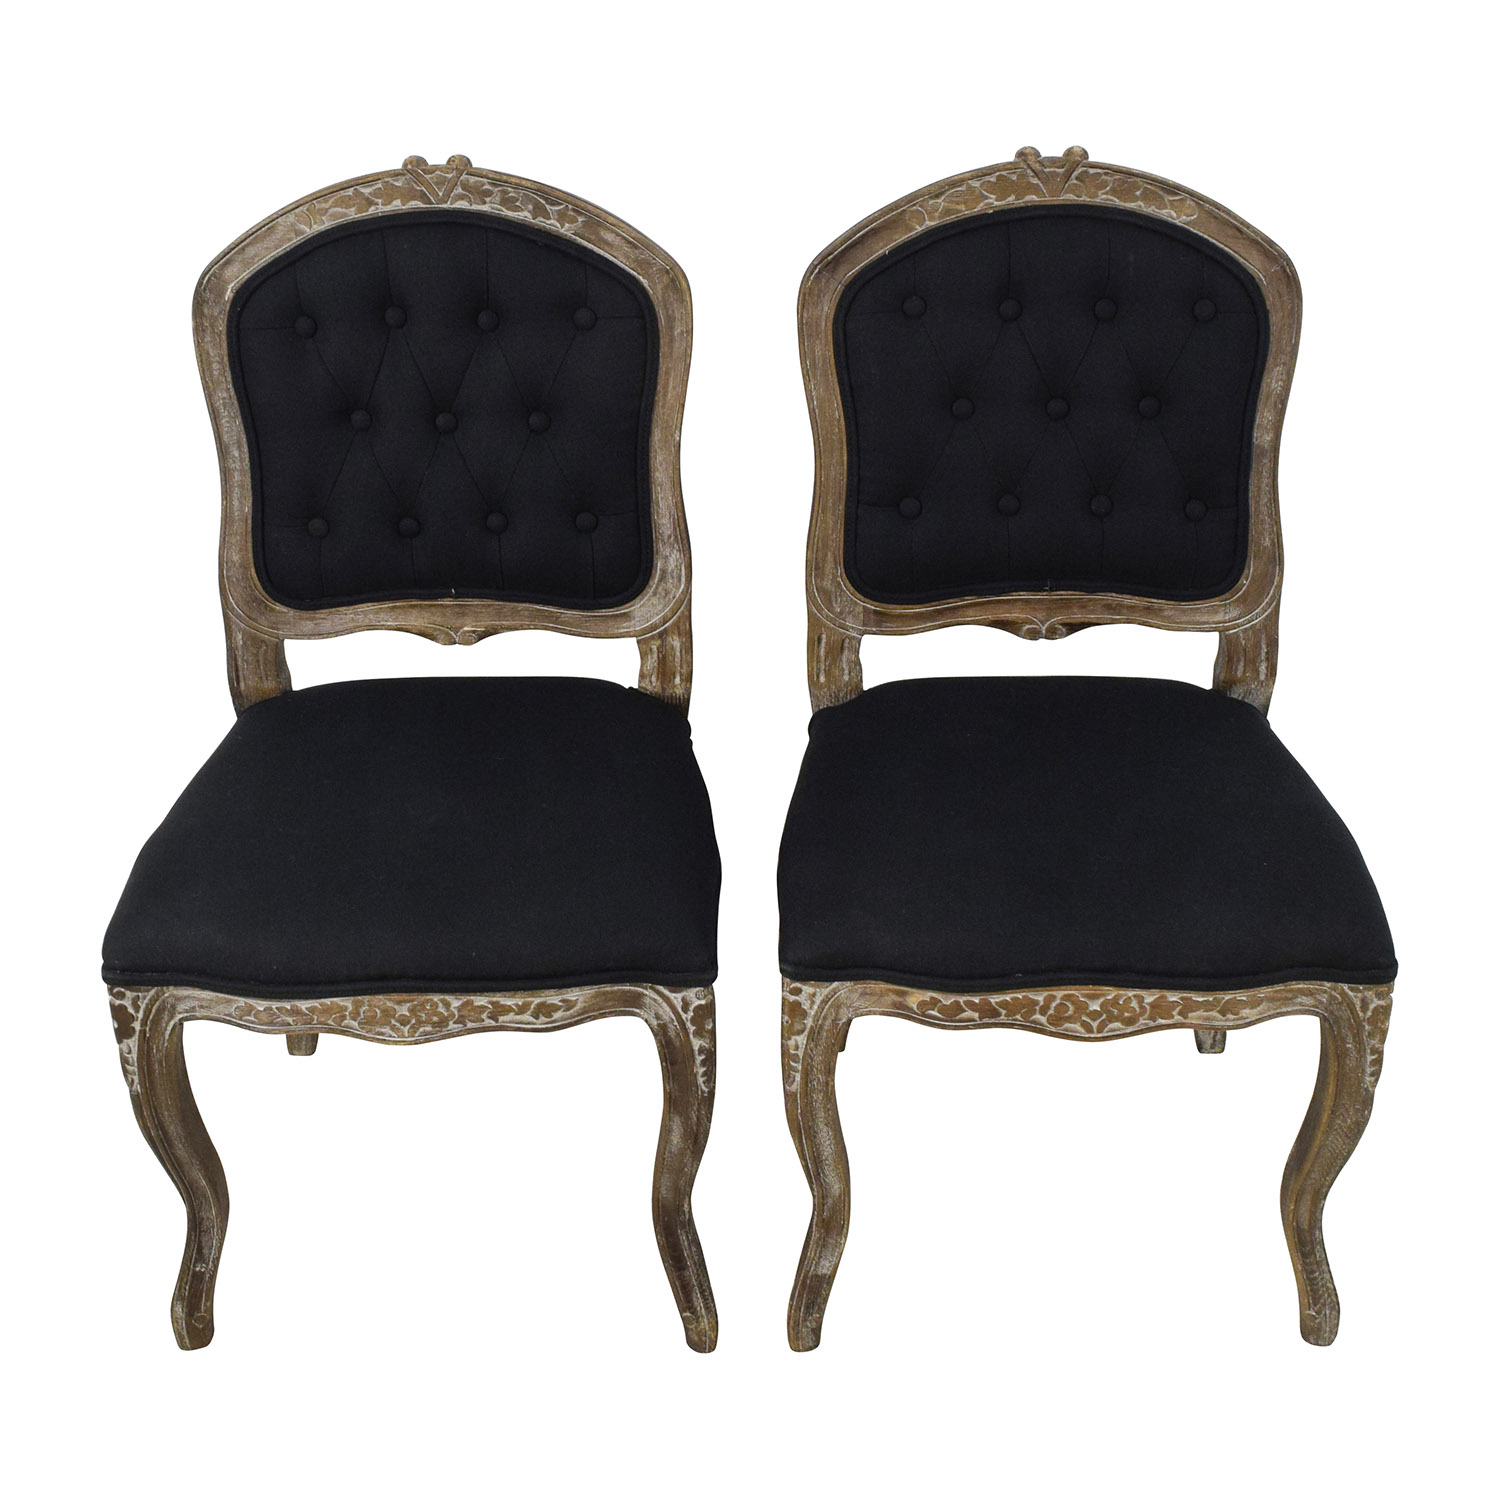 Safavieh Carissa Country French Brown Tufted Chairs sale